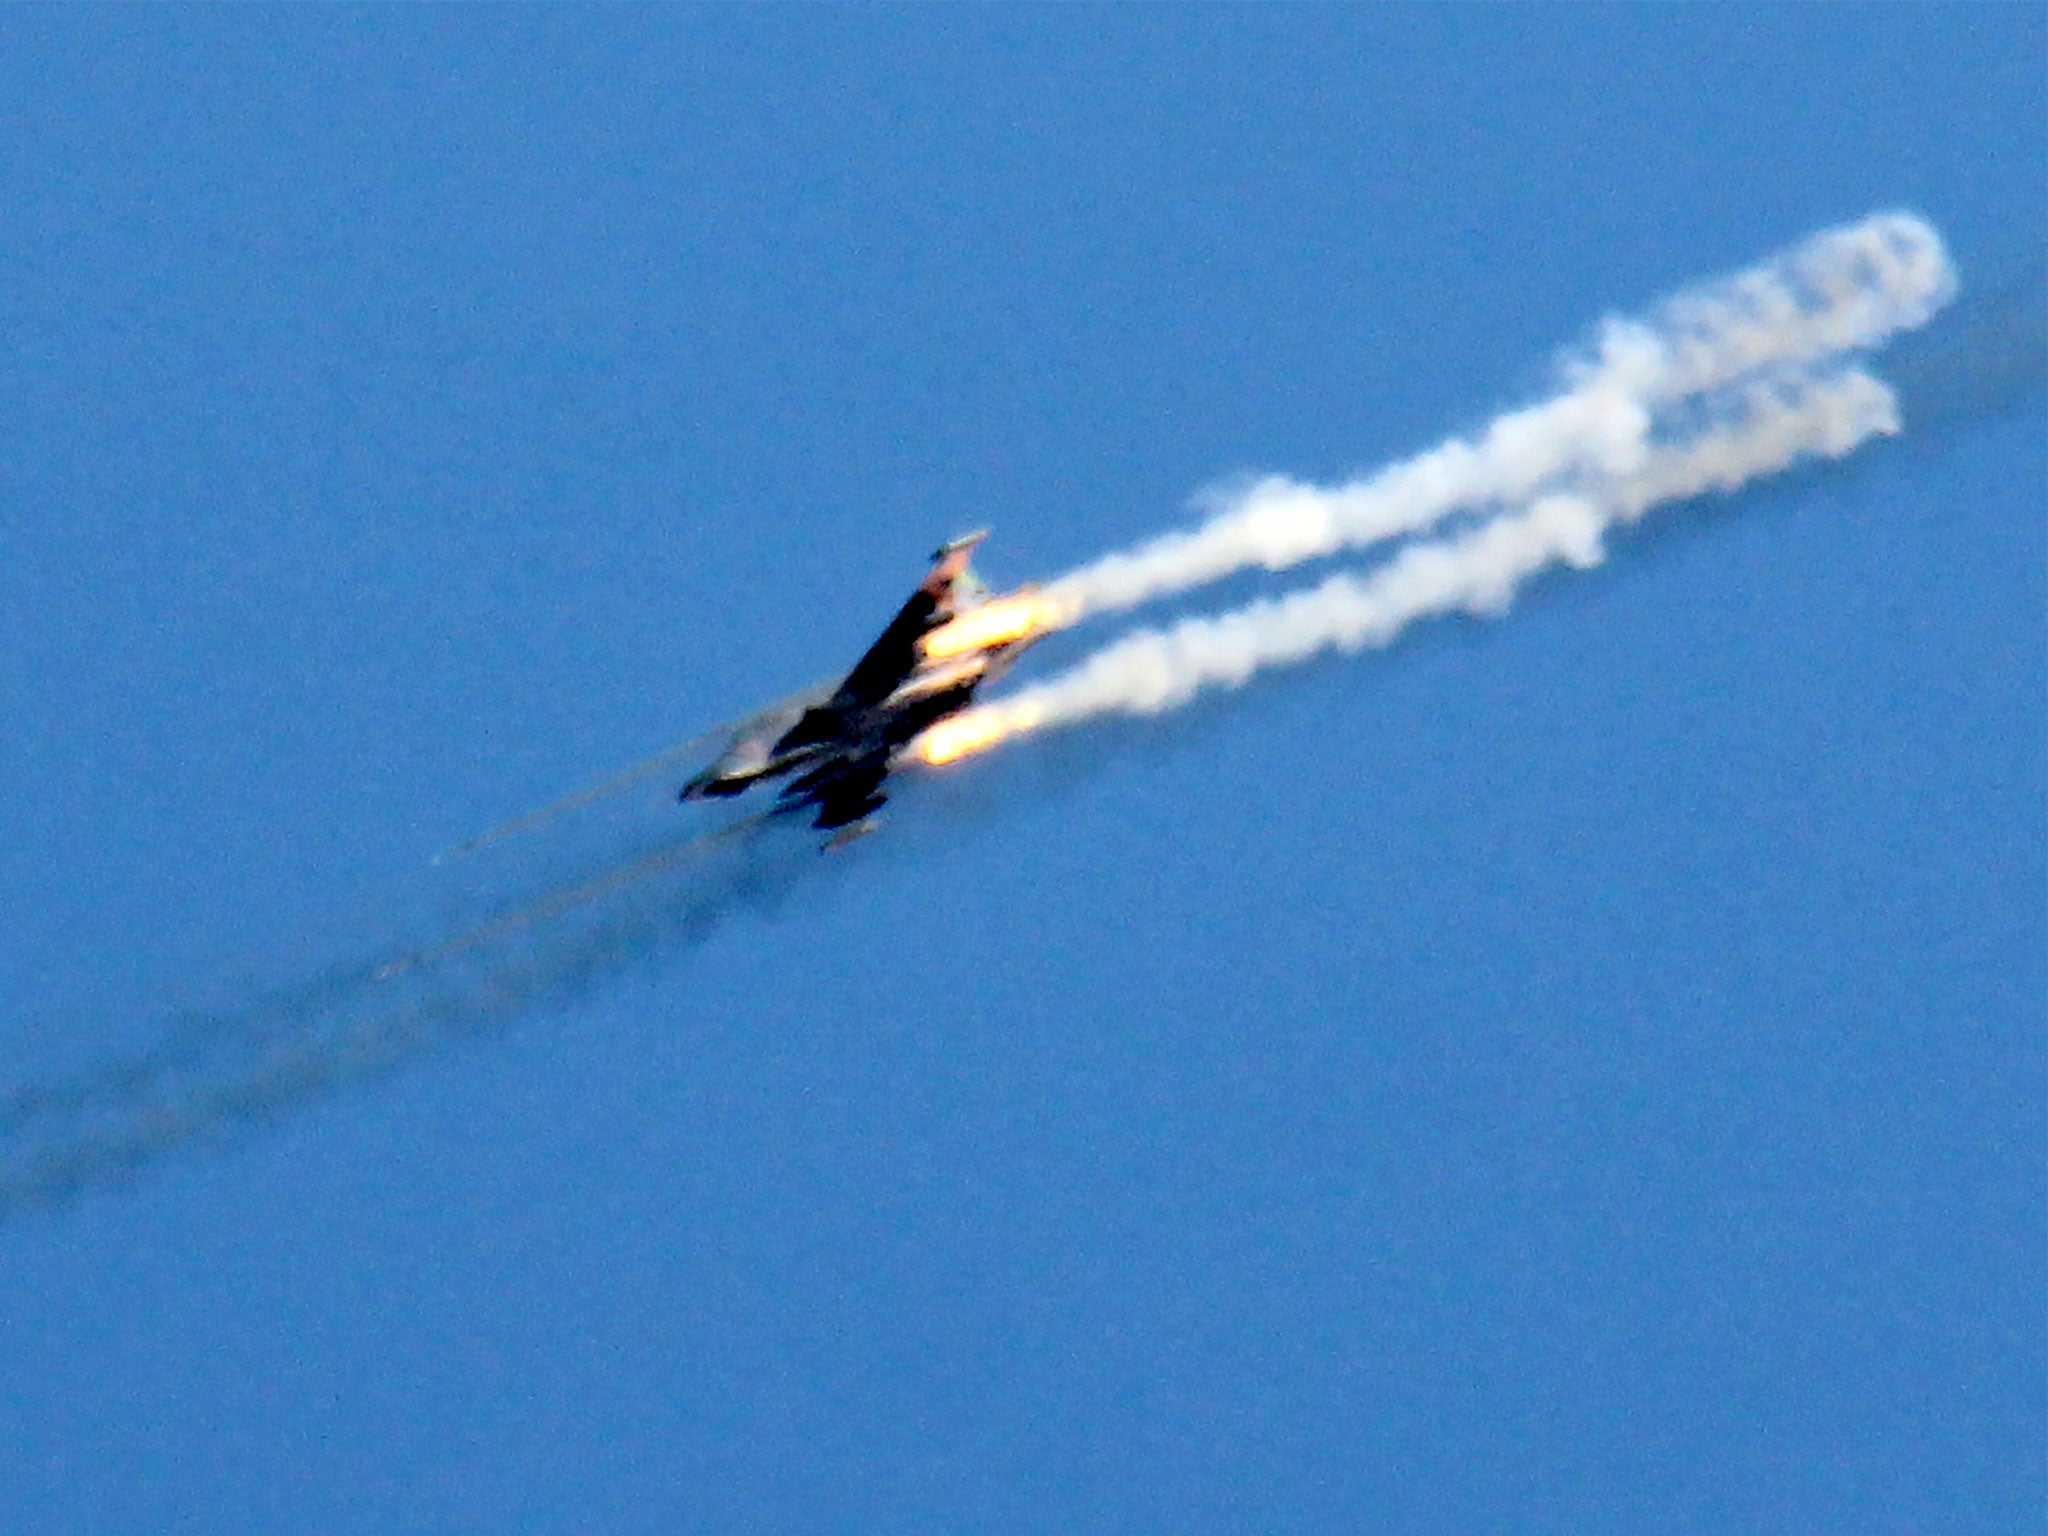 The US seems keener to strike at Syria